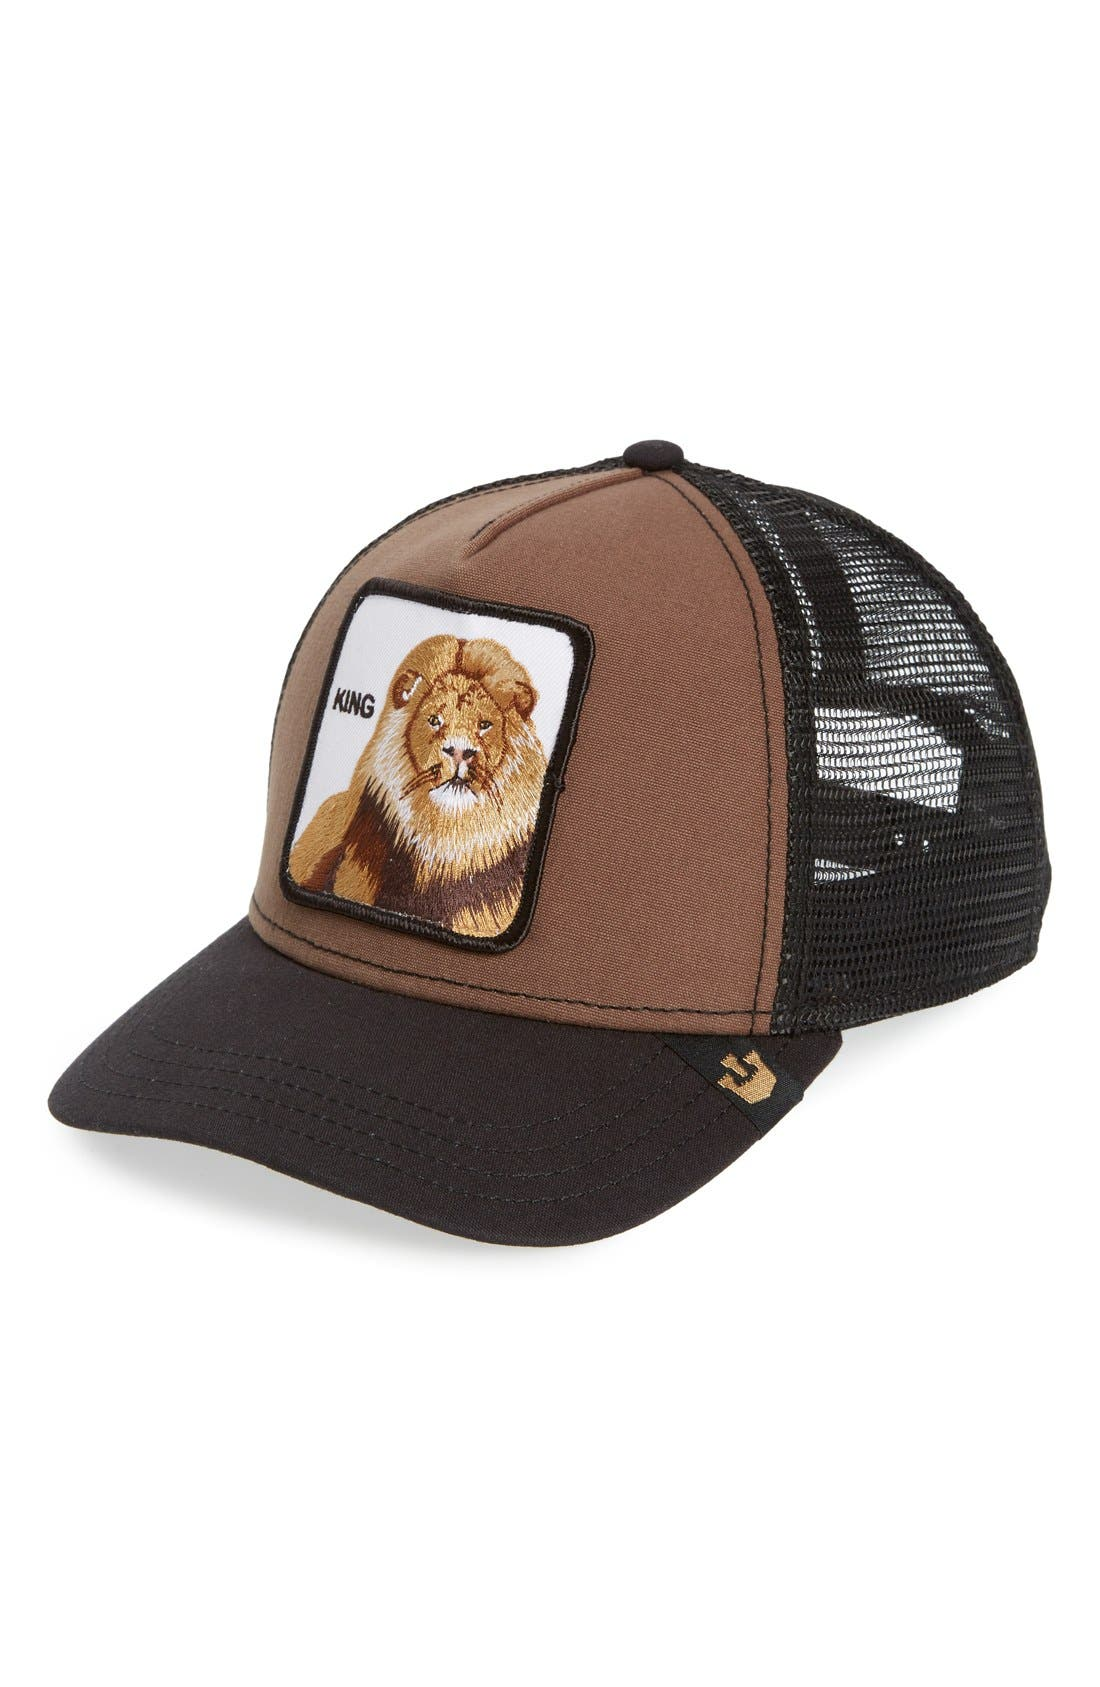 Goorin Brothers 'Animal Farm - King' Trucker Hat